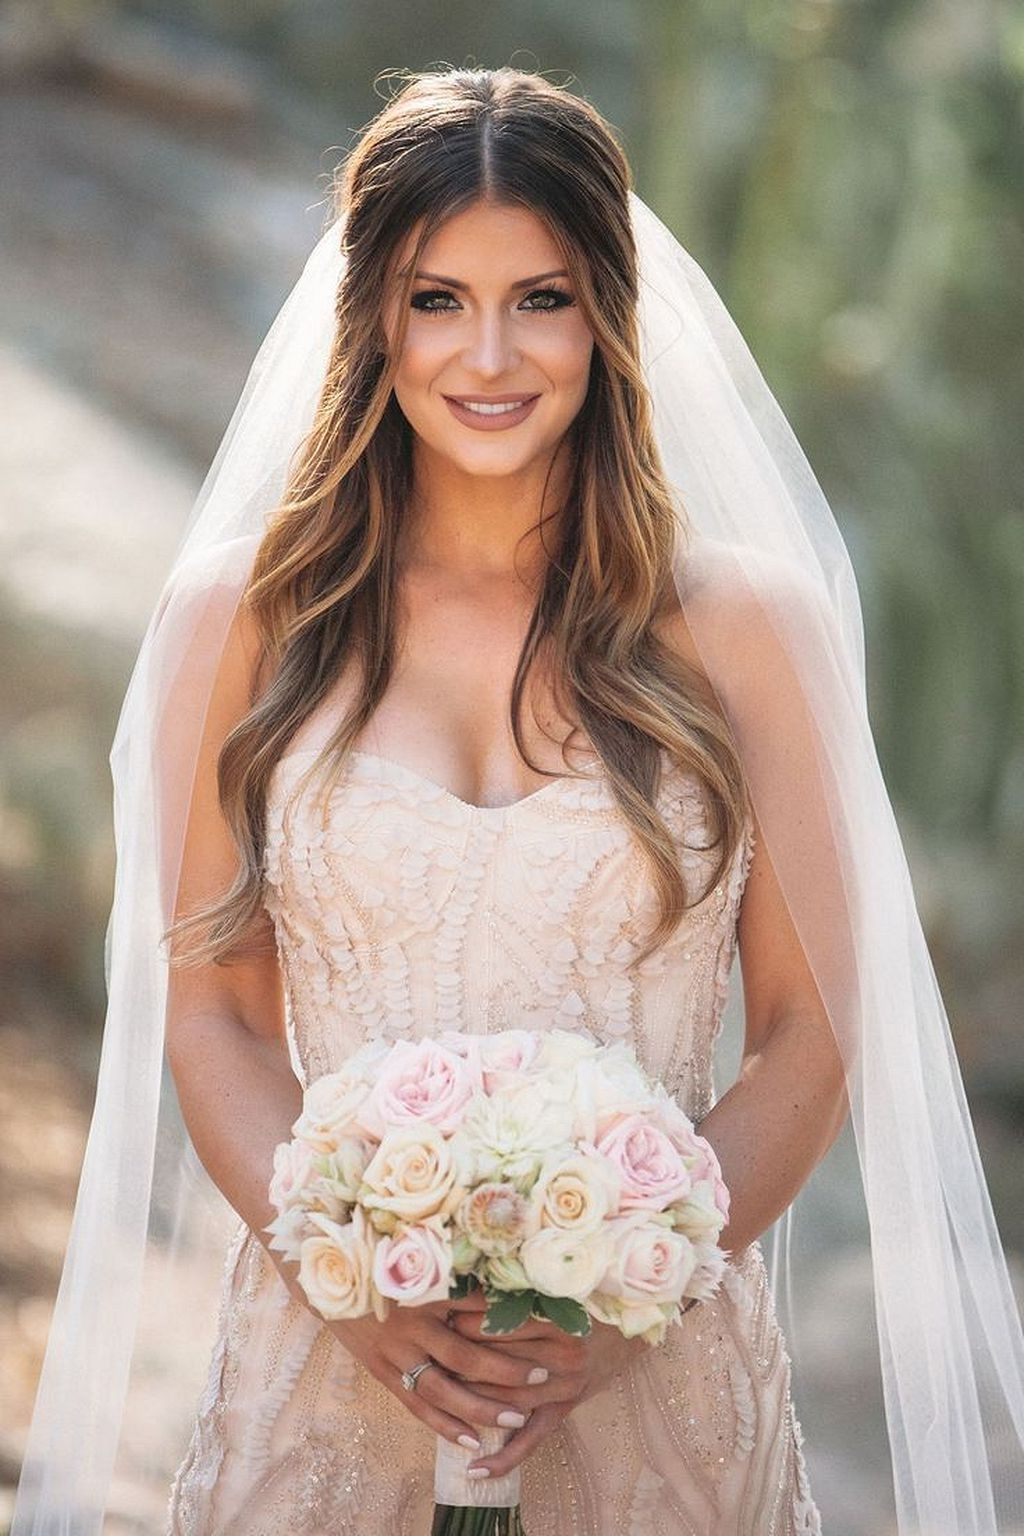 Well Liked Wedding Hairstyles For Long Hair Down With Veil Throughout Great 40 Wedding Hair Down With Veil Ideas Https://weddmagz/ (View 15 of 15)